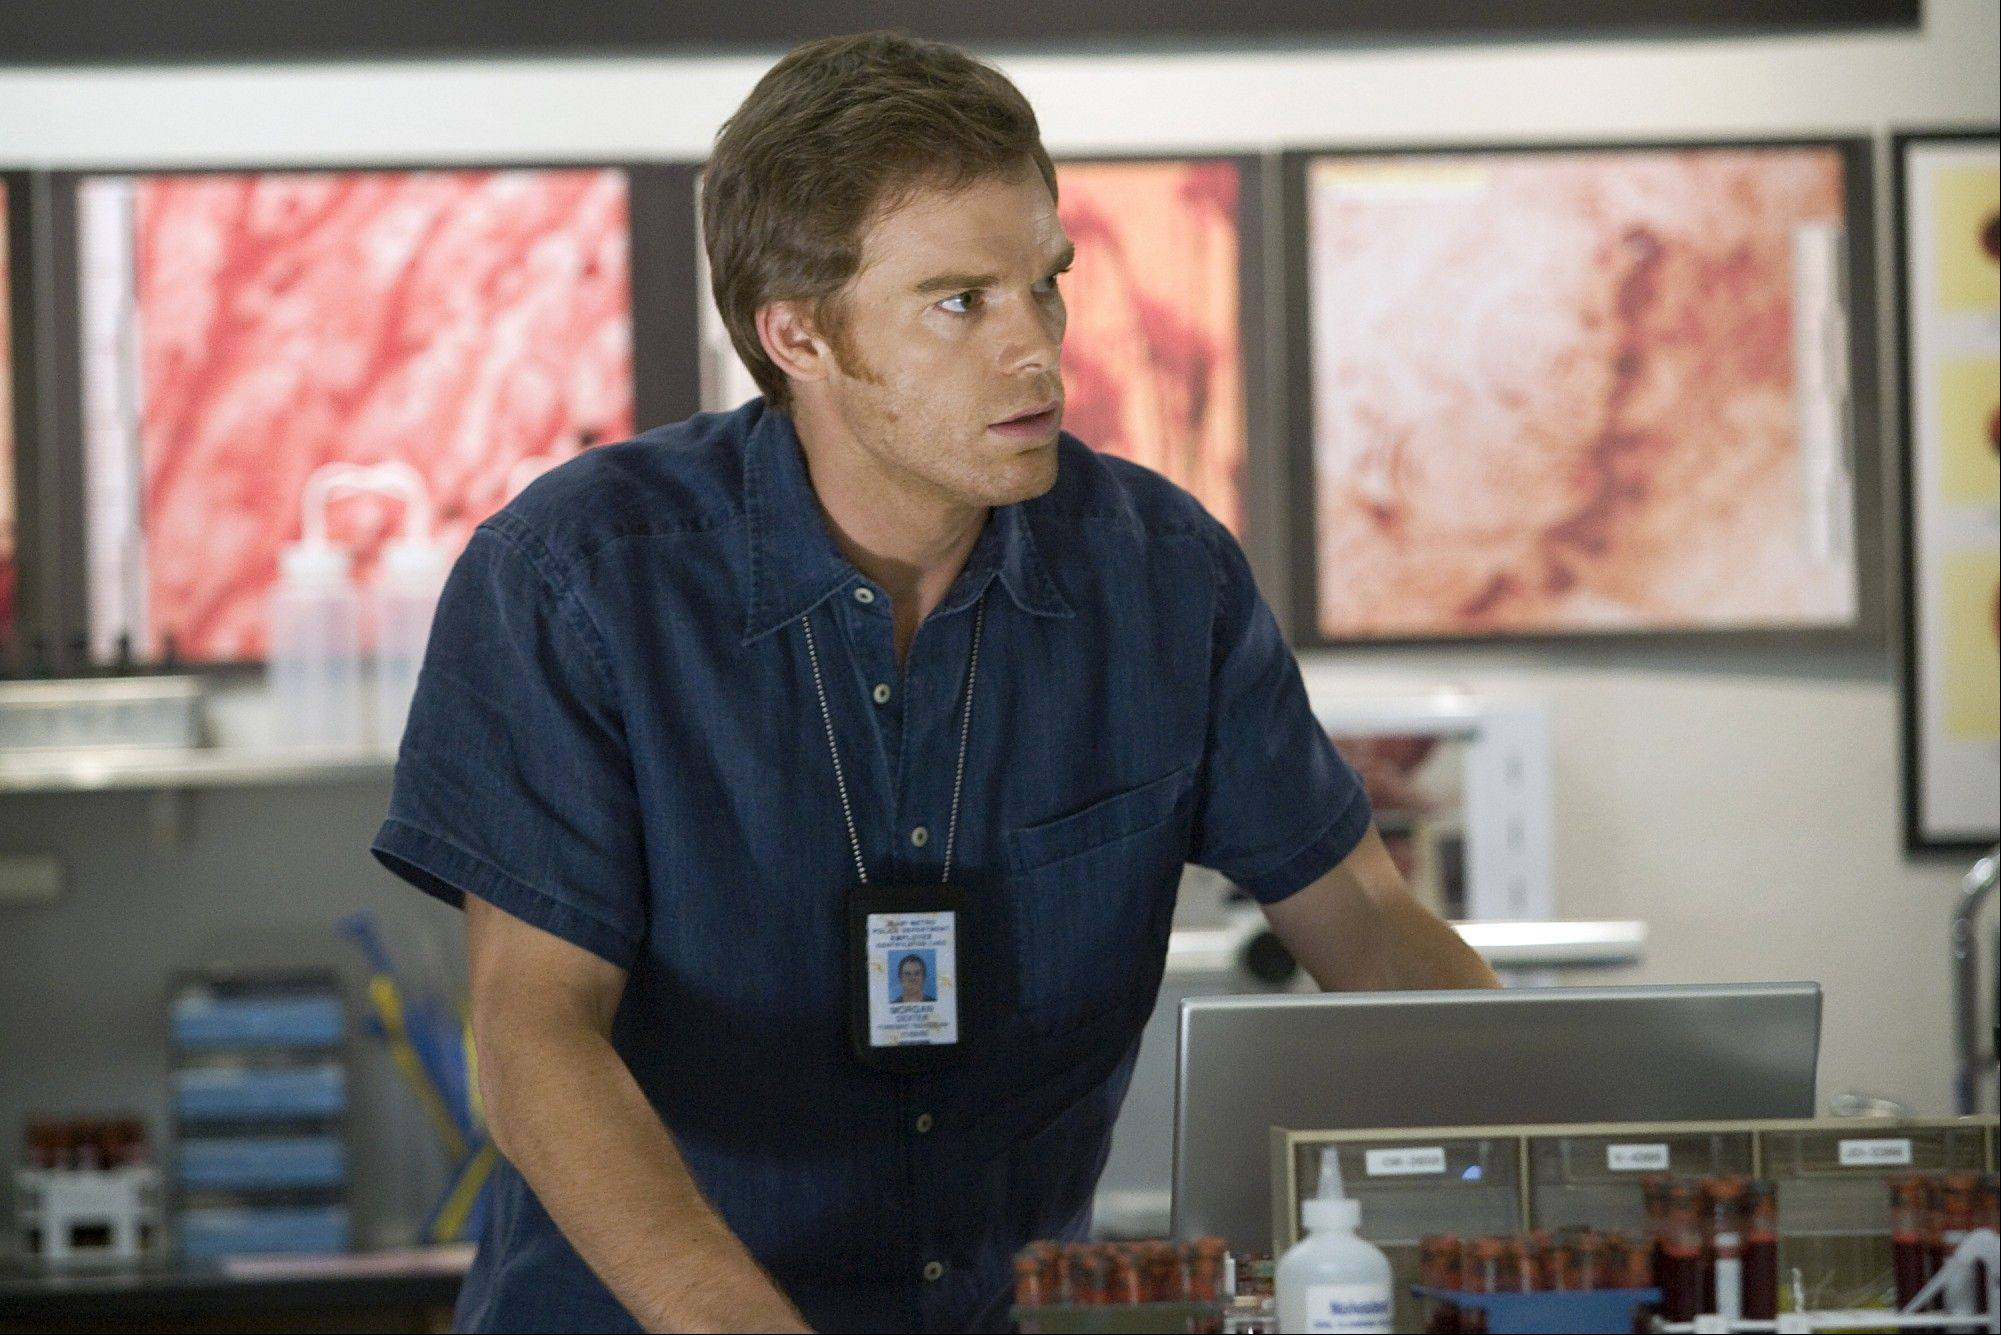 Michael C. Hall, promoting his movie �Cold in July� at the Sundance Film Festival, said in an interview that he agreed with Showtime executives who recently declared that any potential �Dexter� spinoff series would have to include Hall.